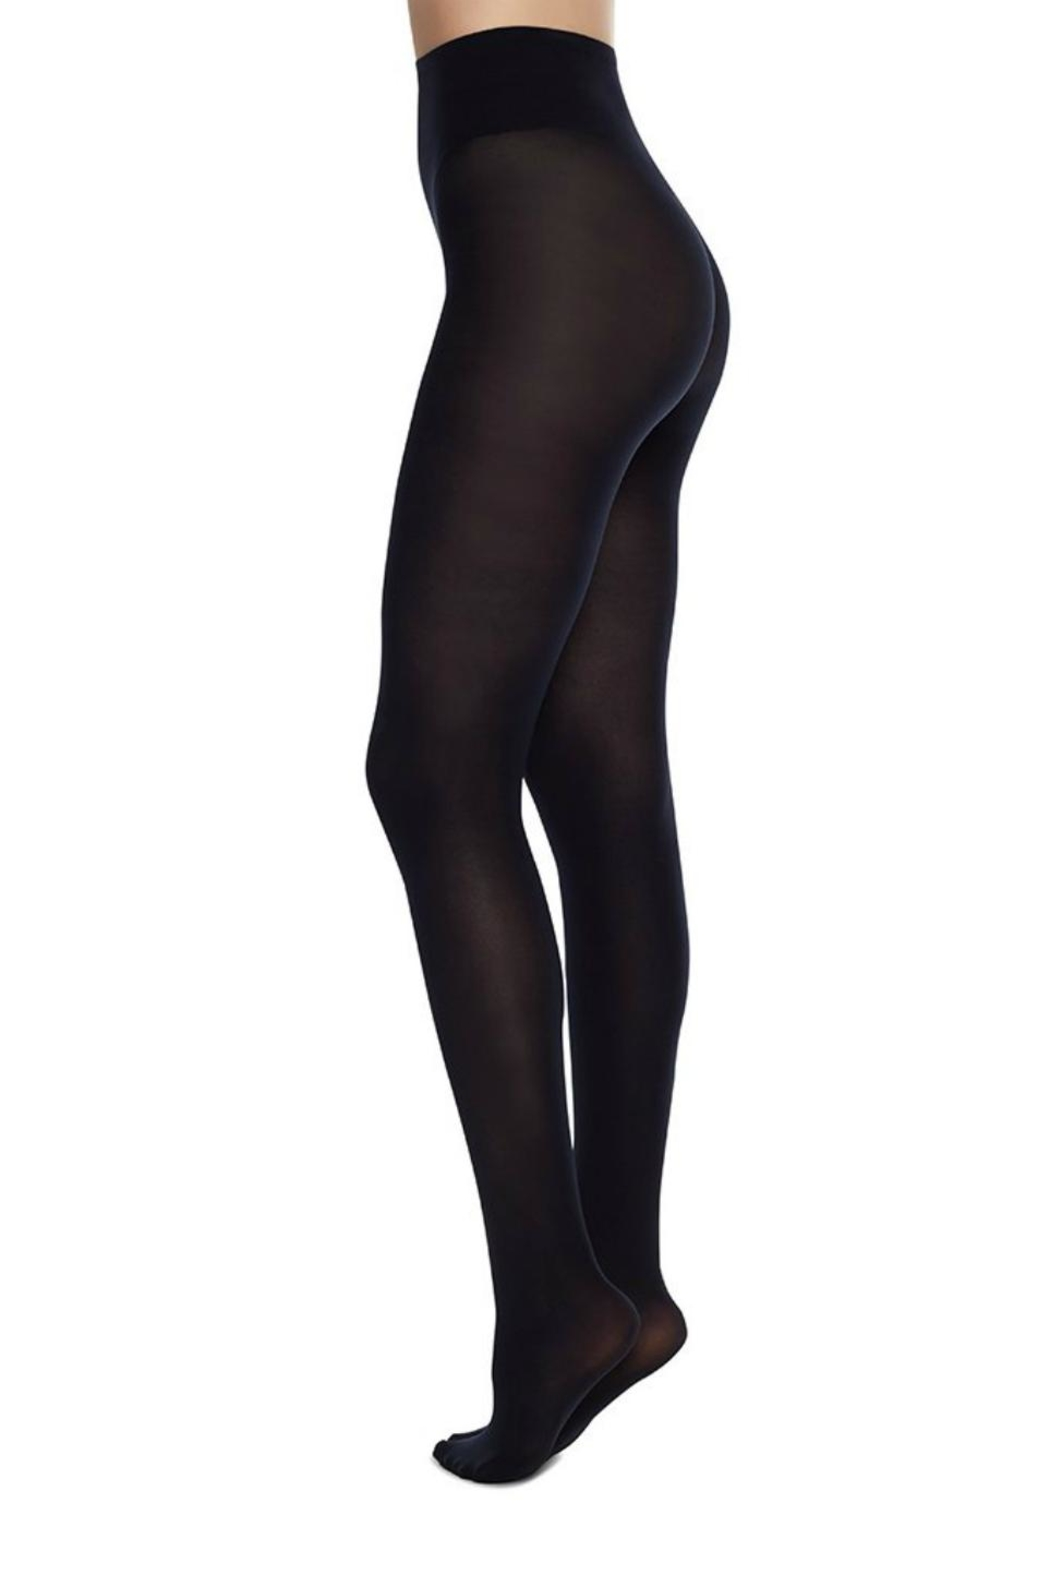 aed211a49 Swedish Stockings Olivia Tights Navy from London by The FAIR Shop ...